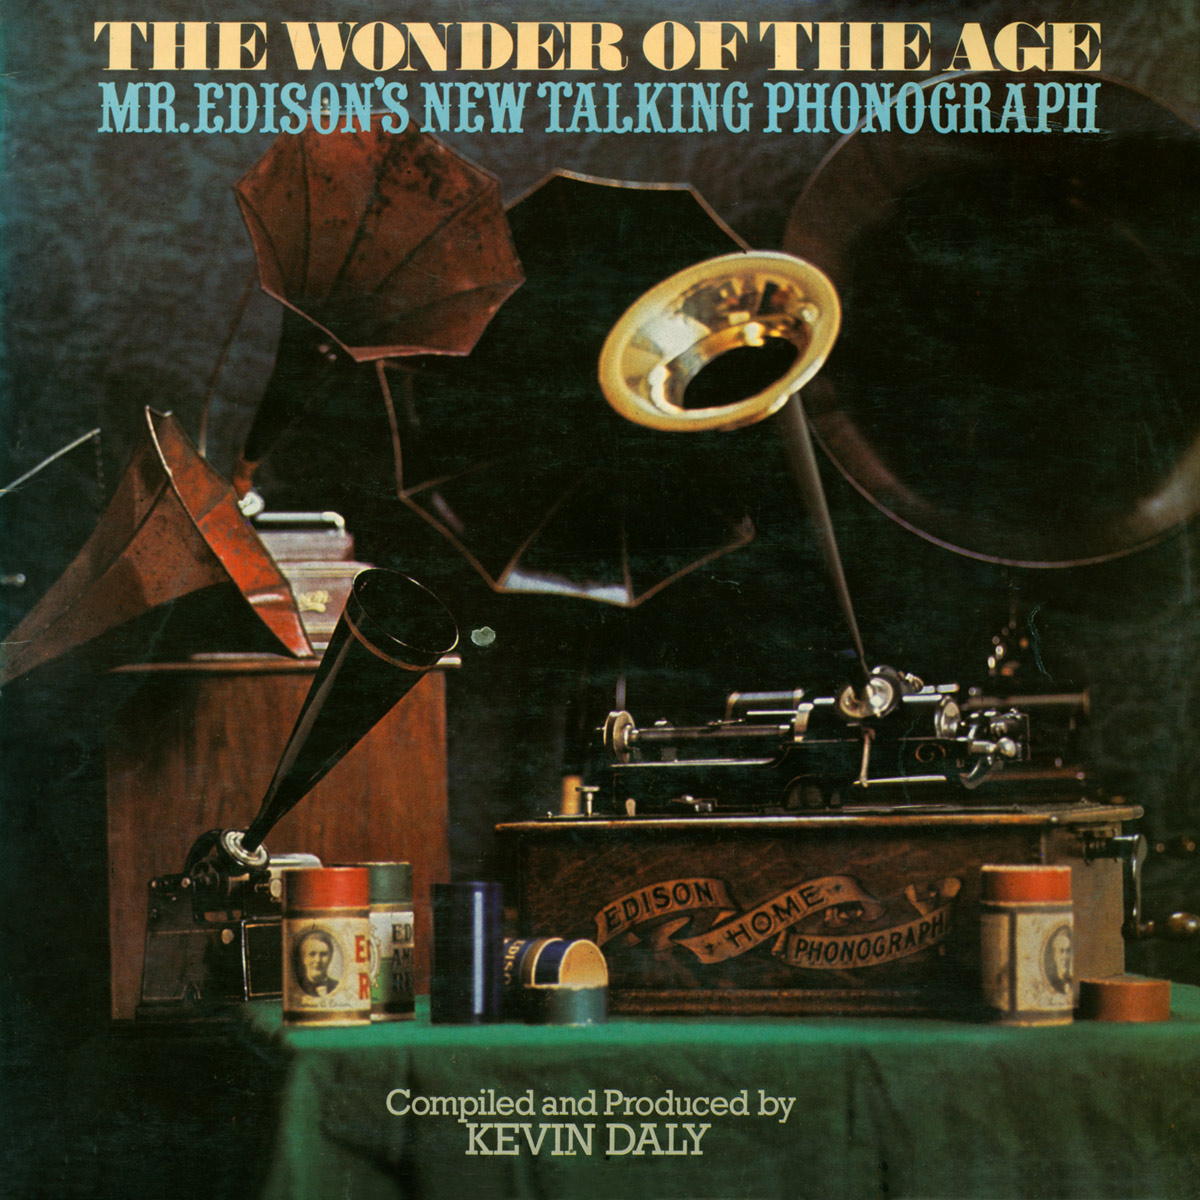 LP COVER OF 'THE WONDER OF THE AGE'